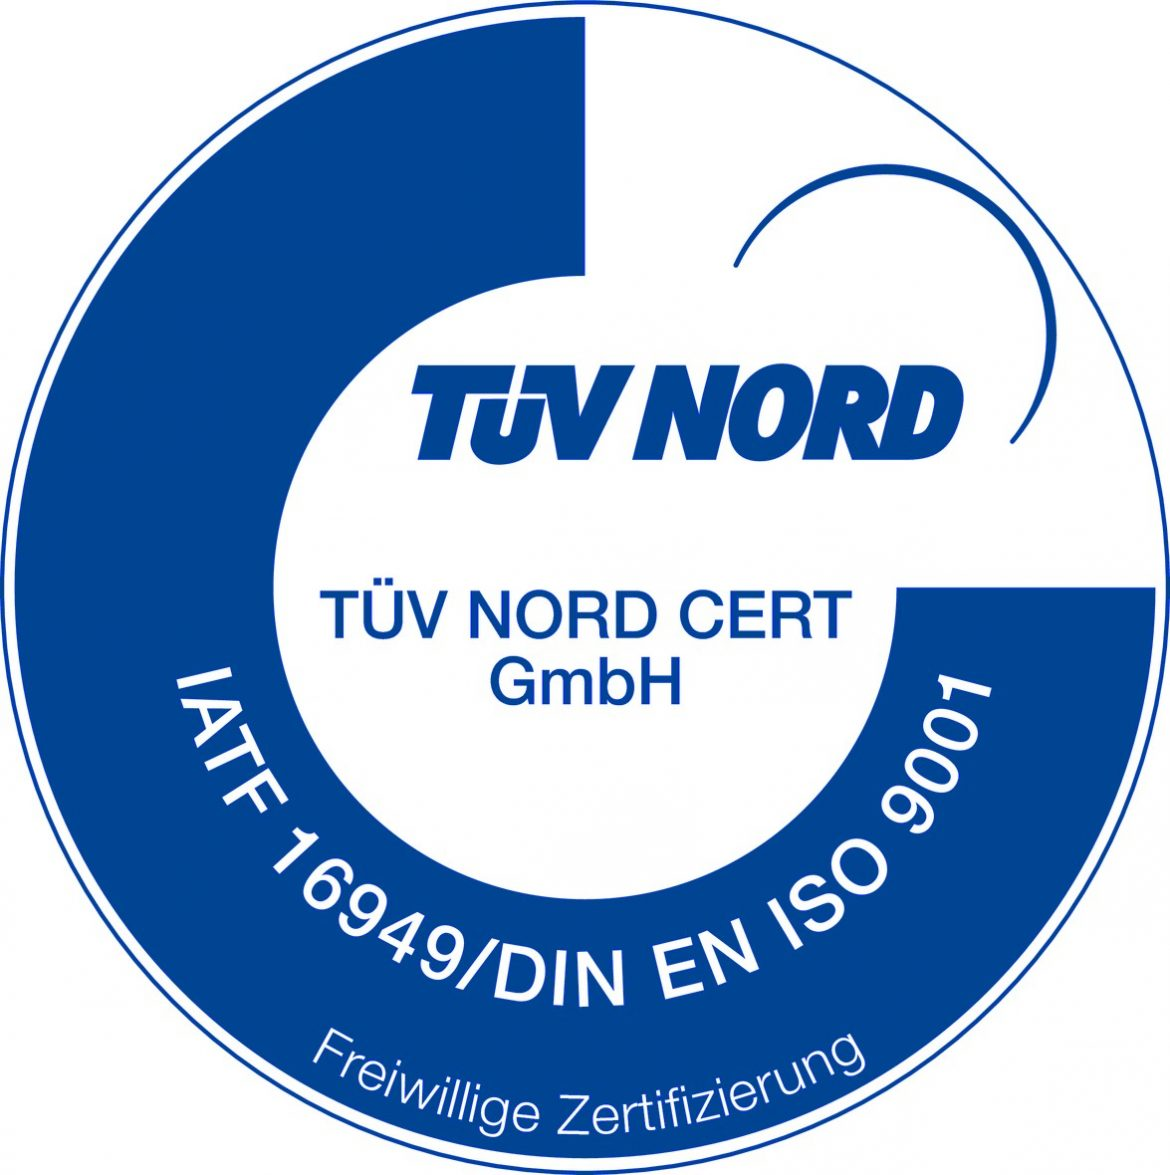 Certificate ISO/TS 16949:2009 TÜV Nord